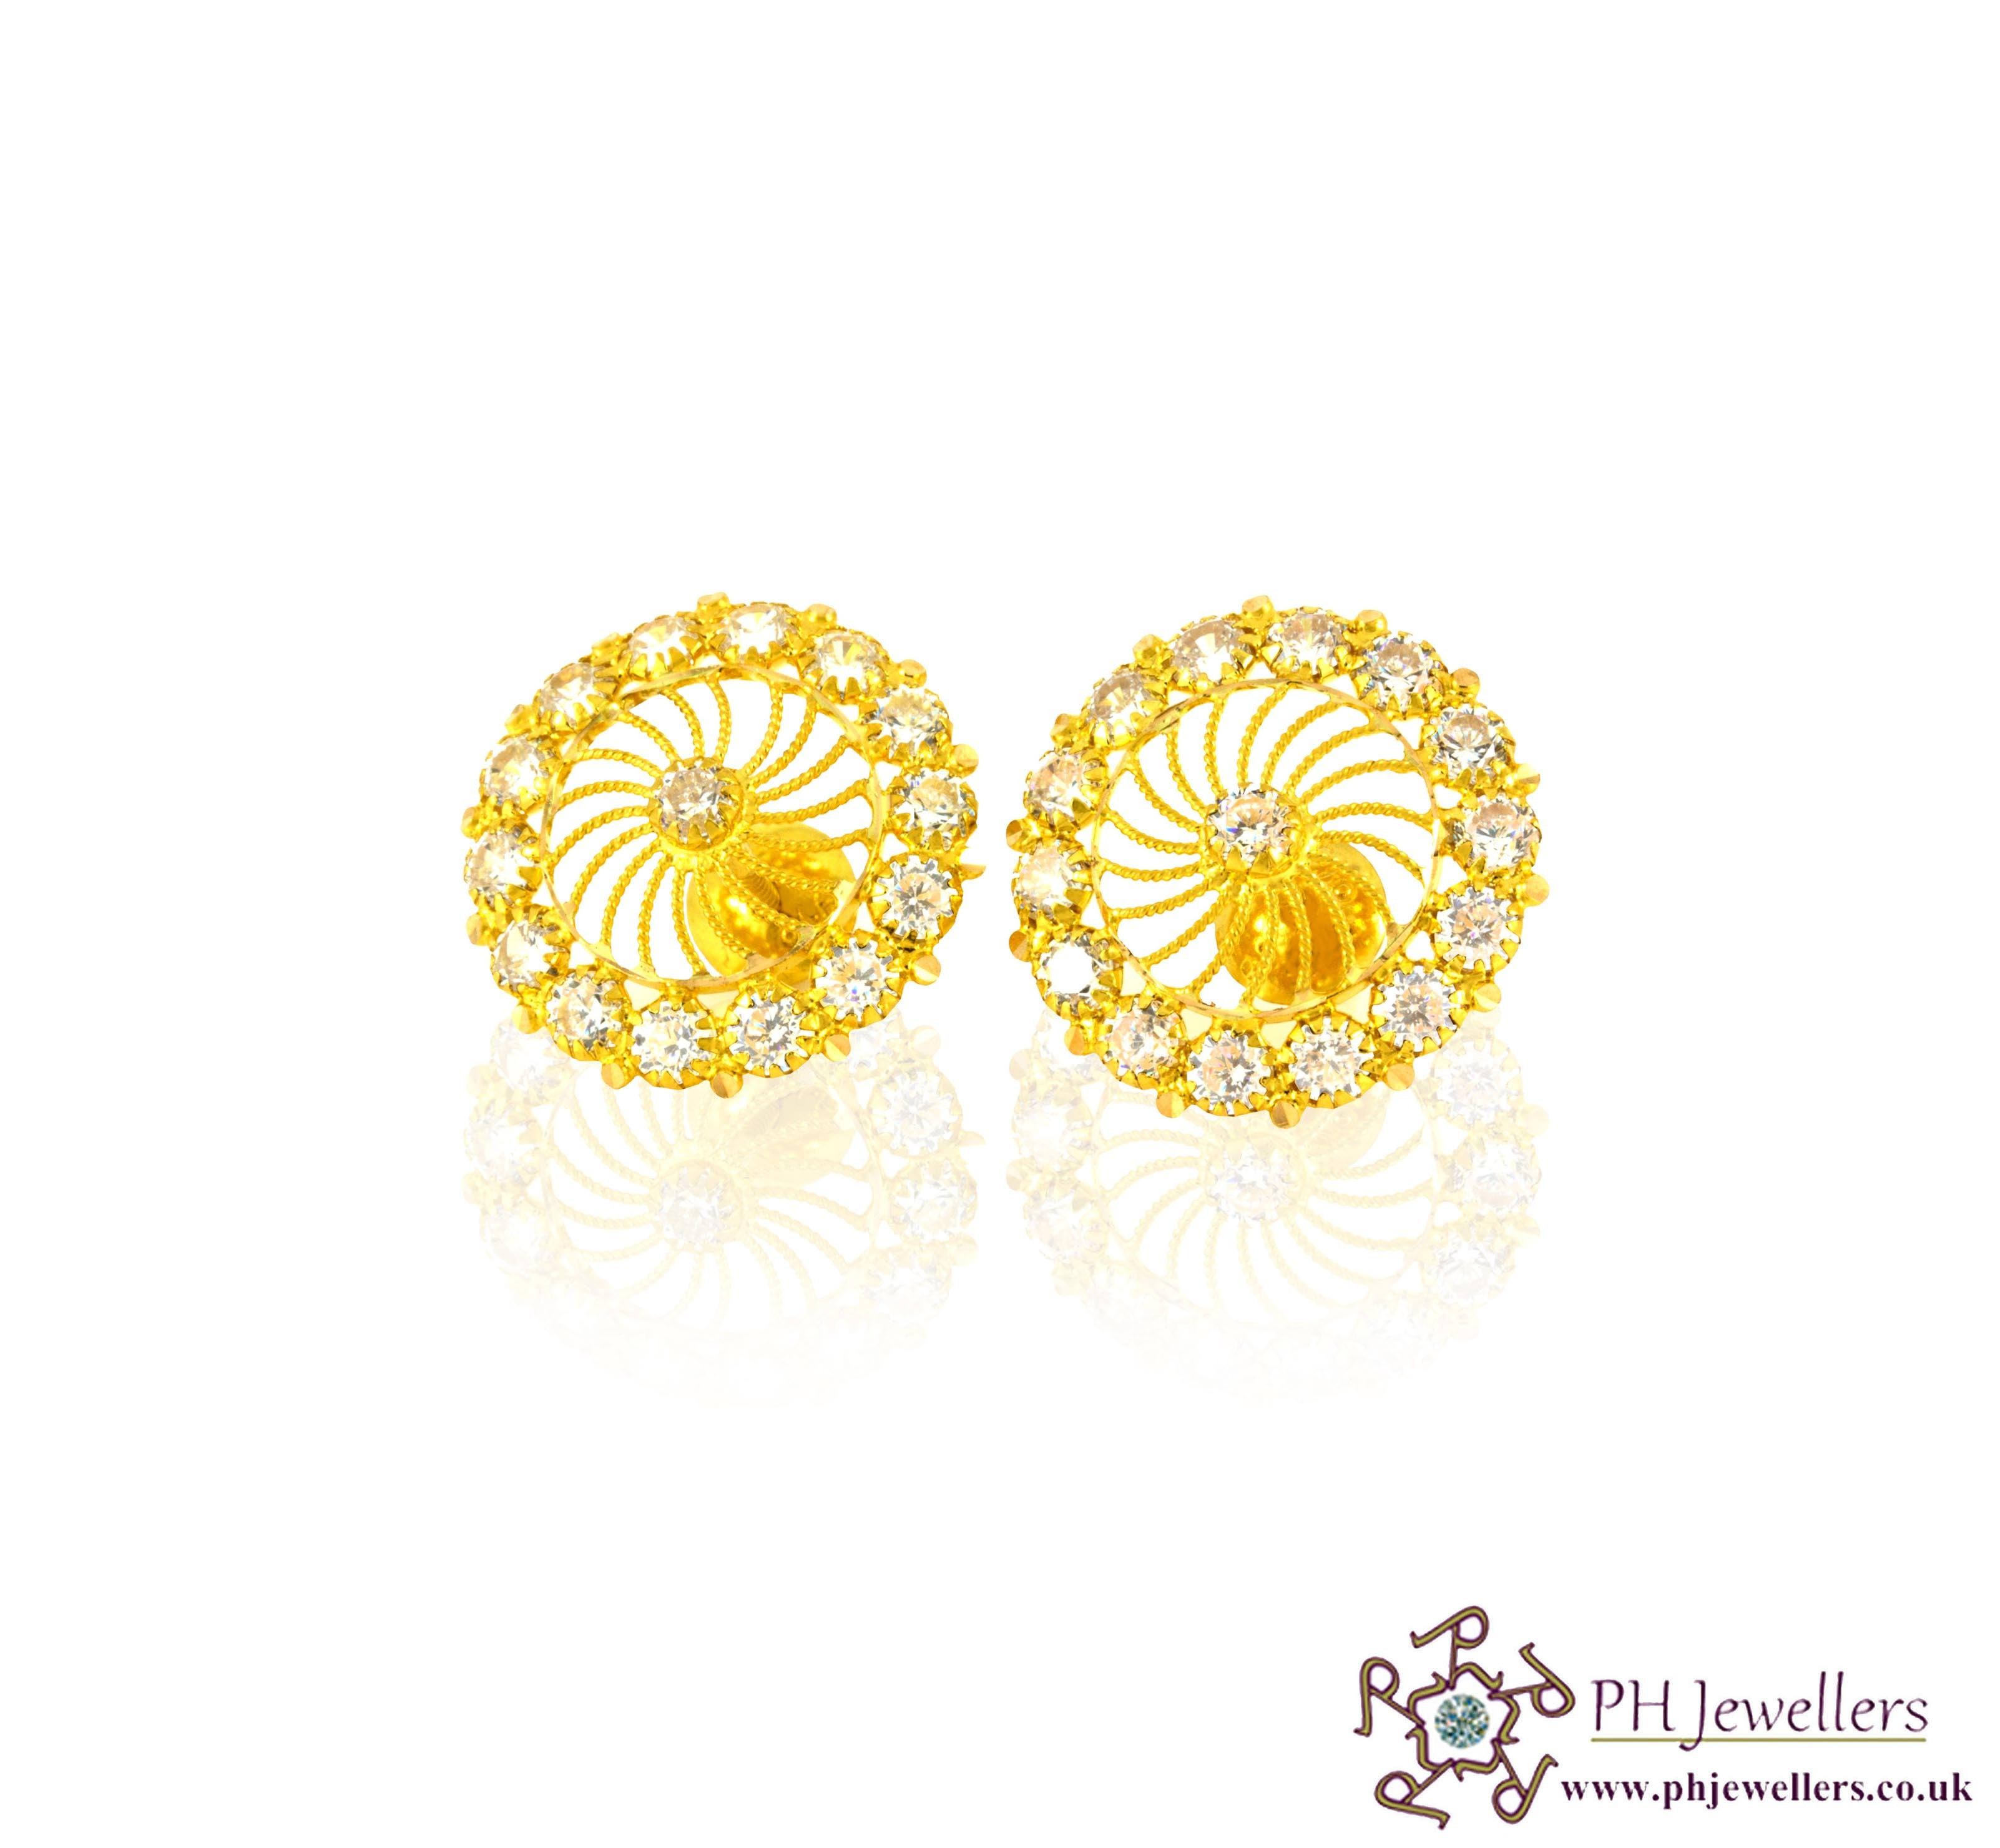 22ct 916 Hallmark Yellow Gold Tops Round Earring CZ TE15